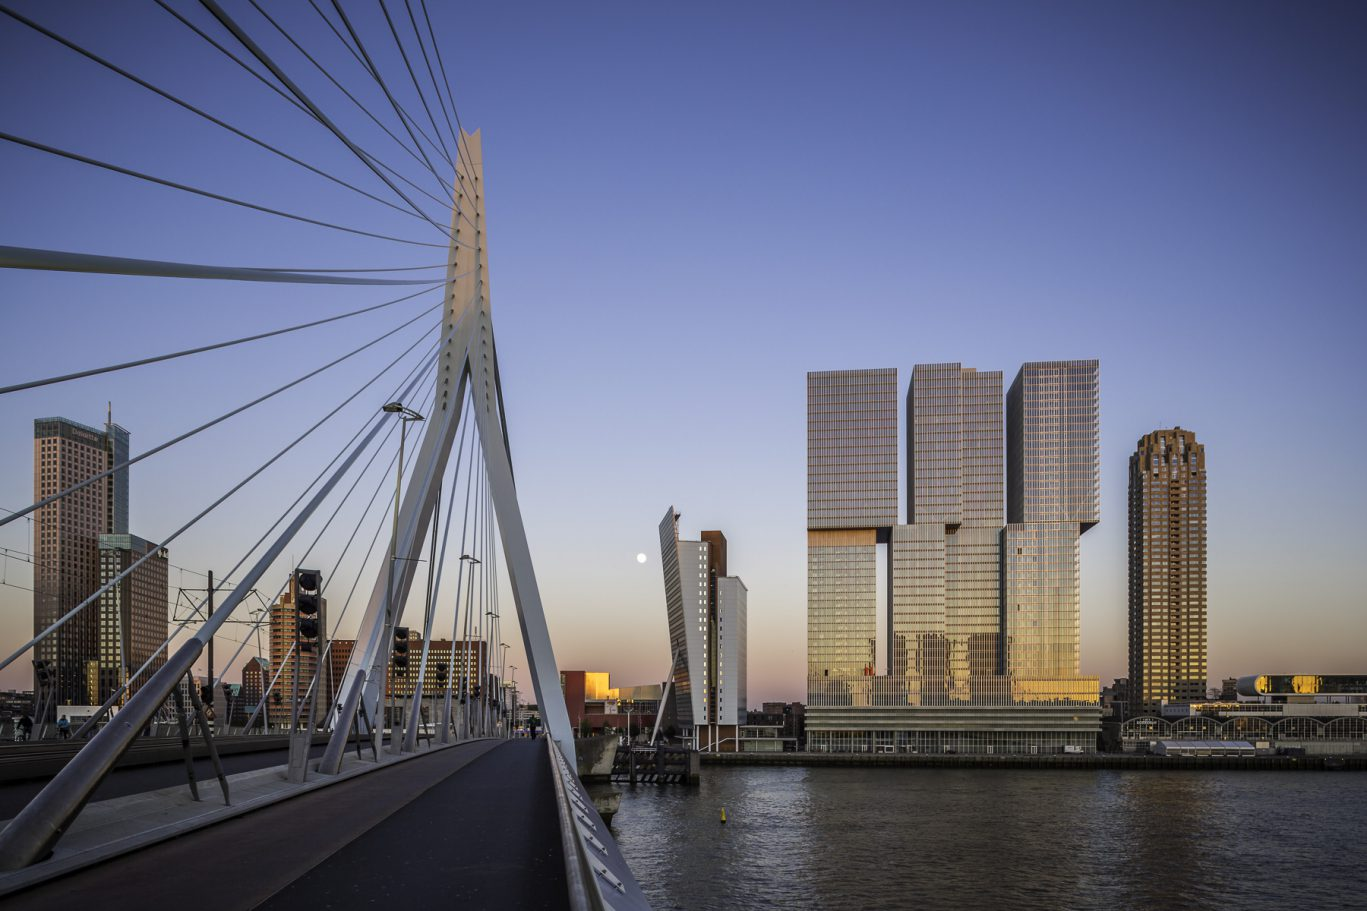 Rotterdam Skyline from Erasmus Bridge